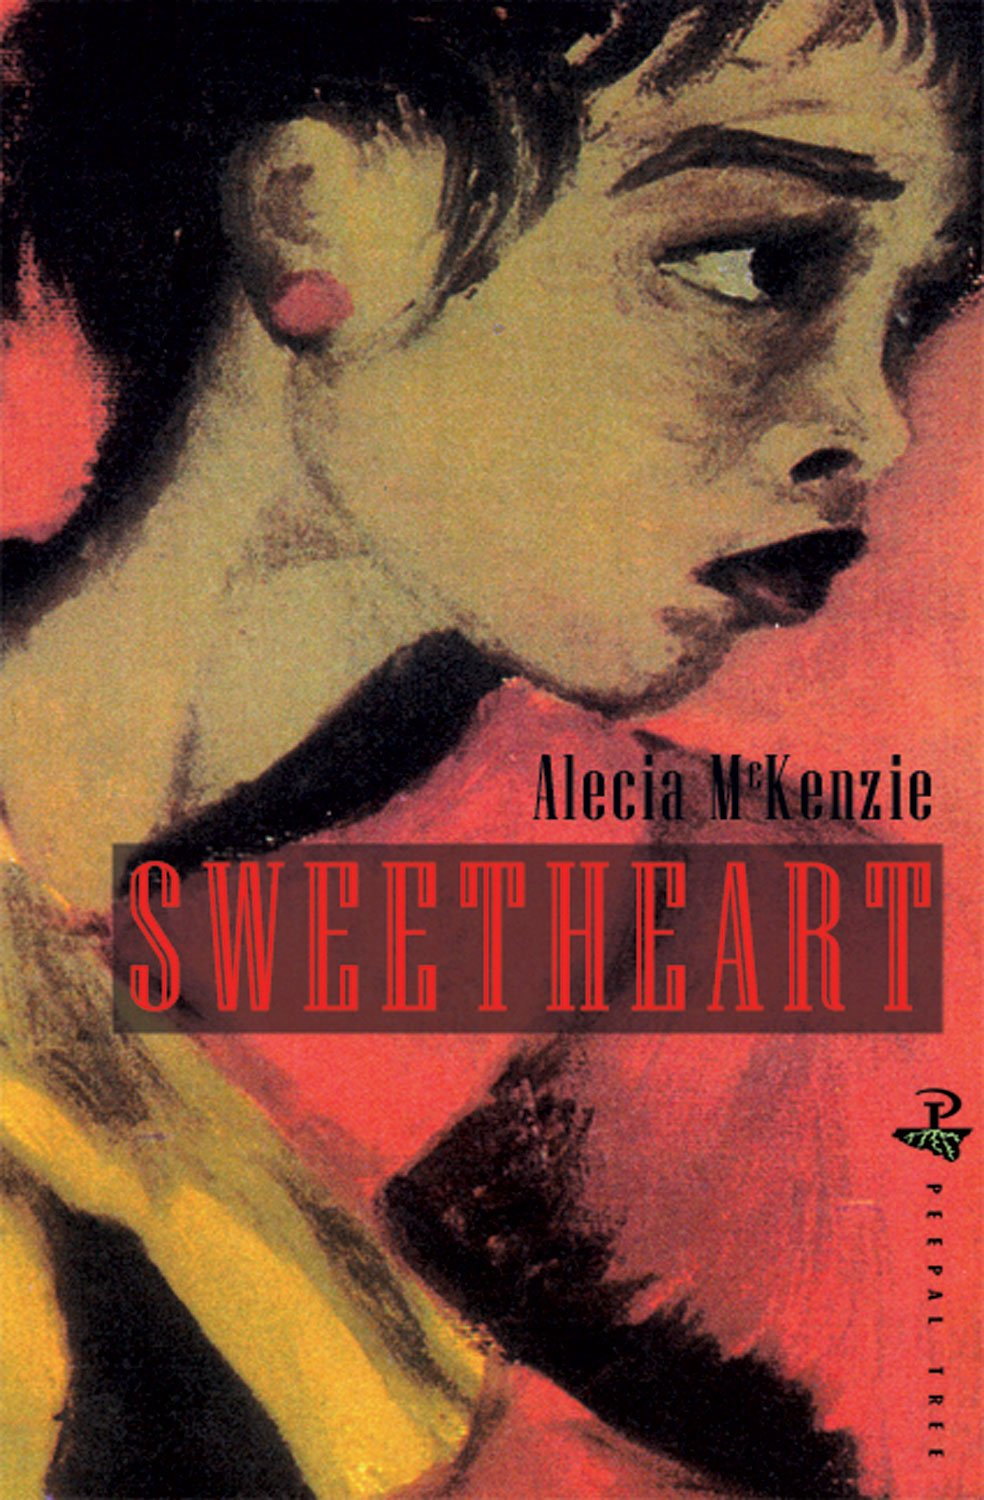 Sweetheart - a novel by Alecia McKenzie